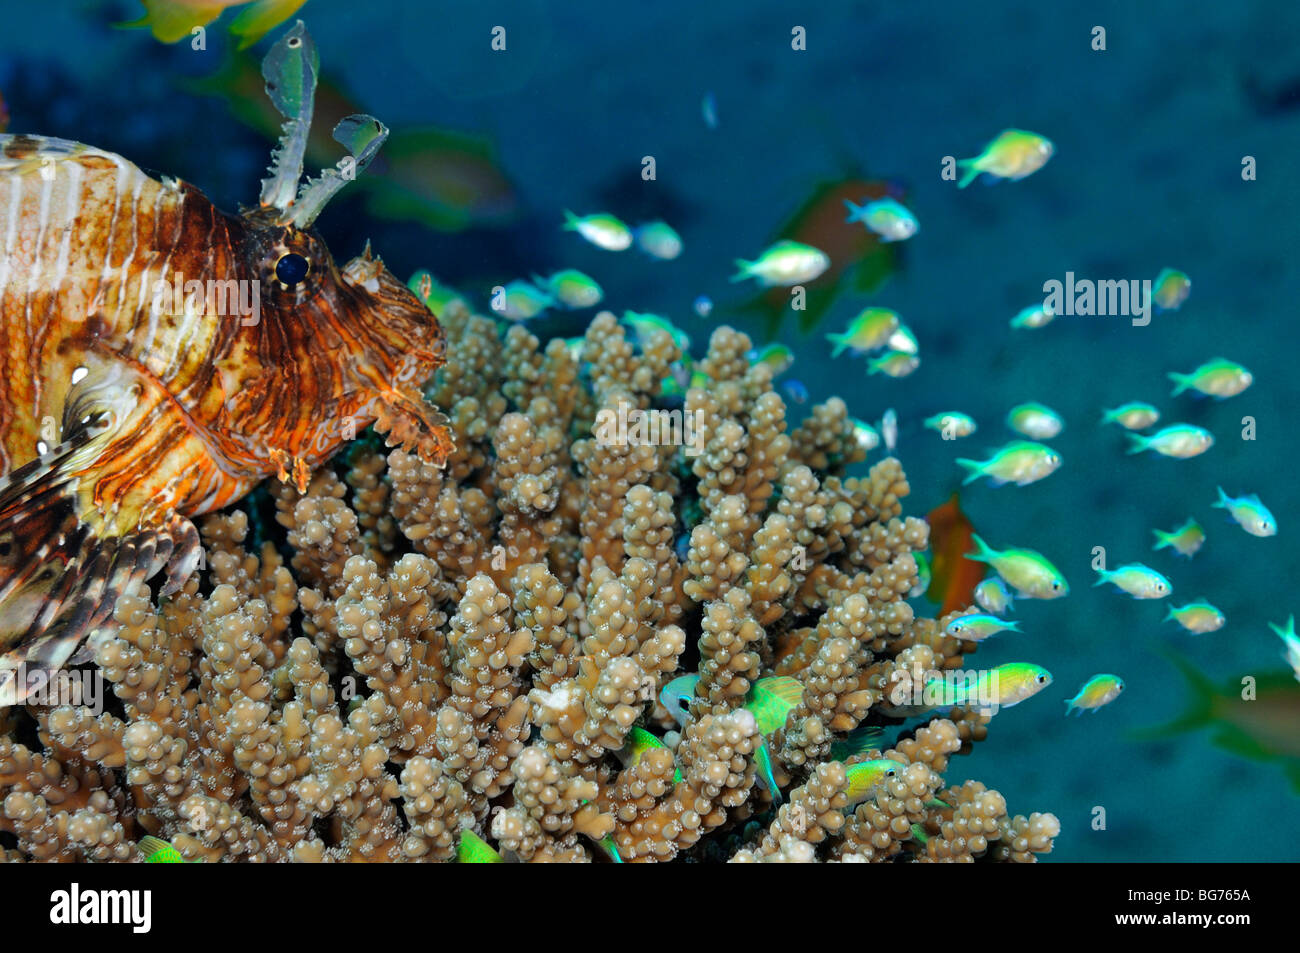 Lionfish on coral looking at future dinner of bluegreen chromis fish - Stock Image